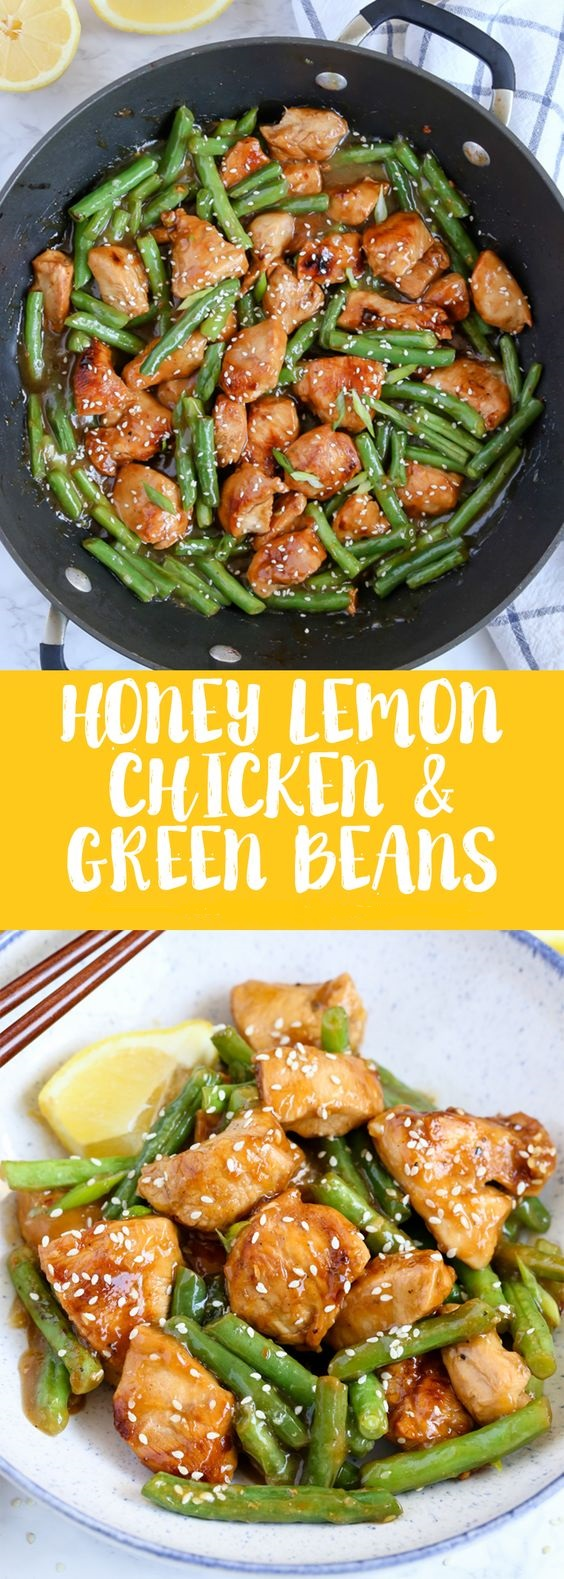 Honey Lemon Chicken and Green Beans  #masonjar #healthy #recipes #greatist #vegetarian #breakfast #brunch  #legumes #chicken #casseroles #tortilla #homemade #popularrcipes #poultry #delicious #pastafoodrecipes  #Easy #Spices #ChopSuey #Soup #Classic #gingerbread #ginger #cake #classic #baking #dessert #recipes #christmas #dessertrecipes #Vegetarian #Food #Fish #Dessert #Lunch #Dinner #SnackRecipes #BeefRecipes #DrinkRecipes #CookbookRecipesEasy #HealthyRecipes #AllRecipes #ChickenRecipes #CookiesRecipes